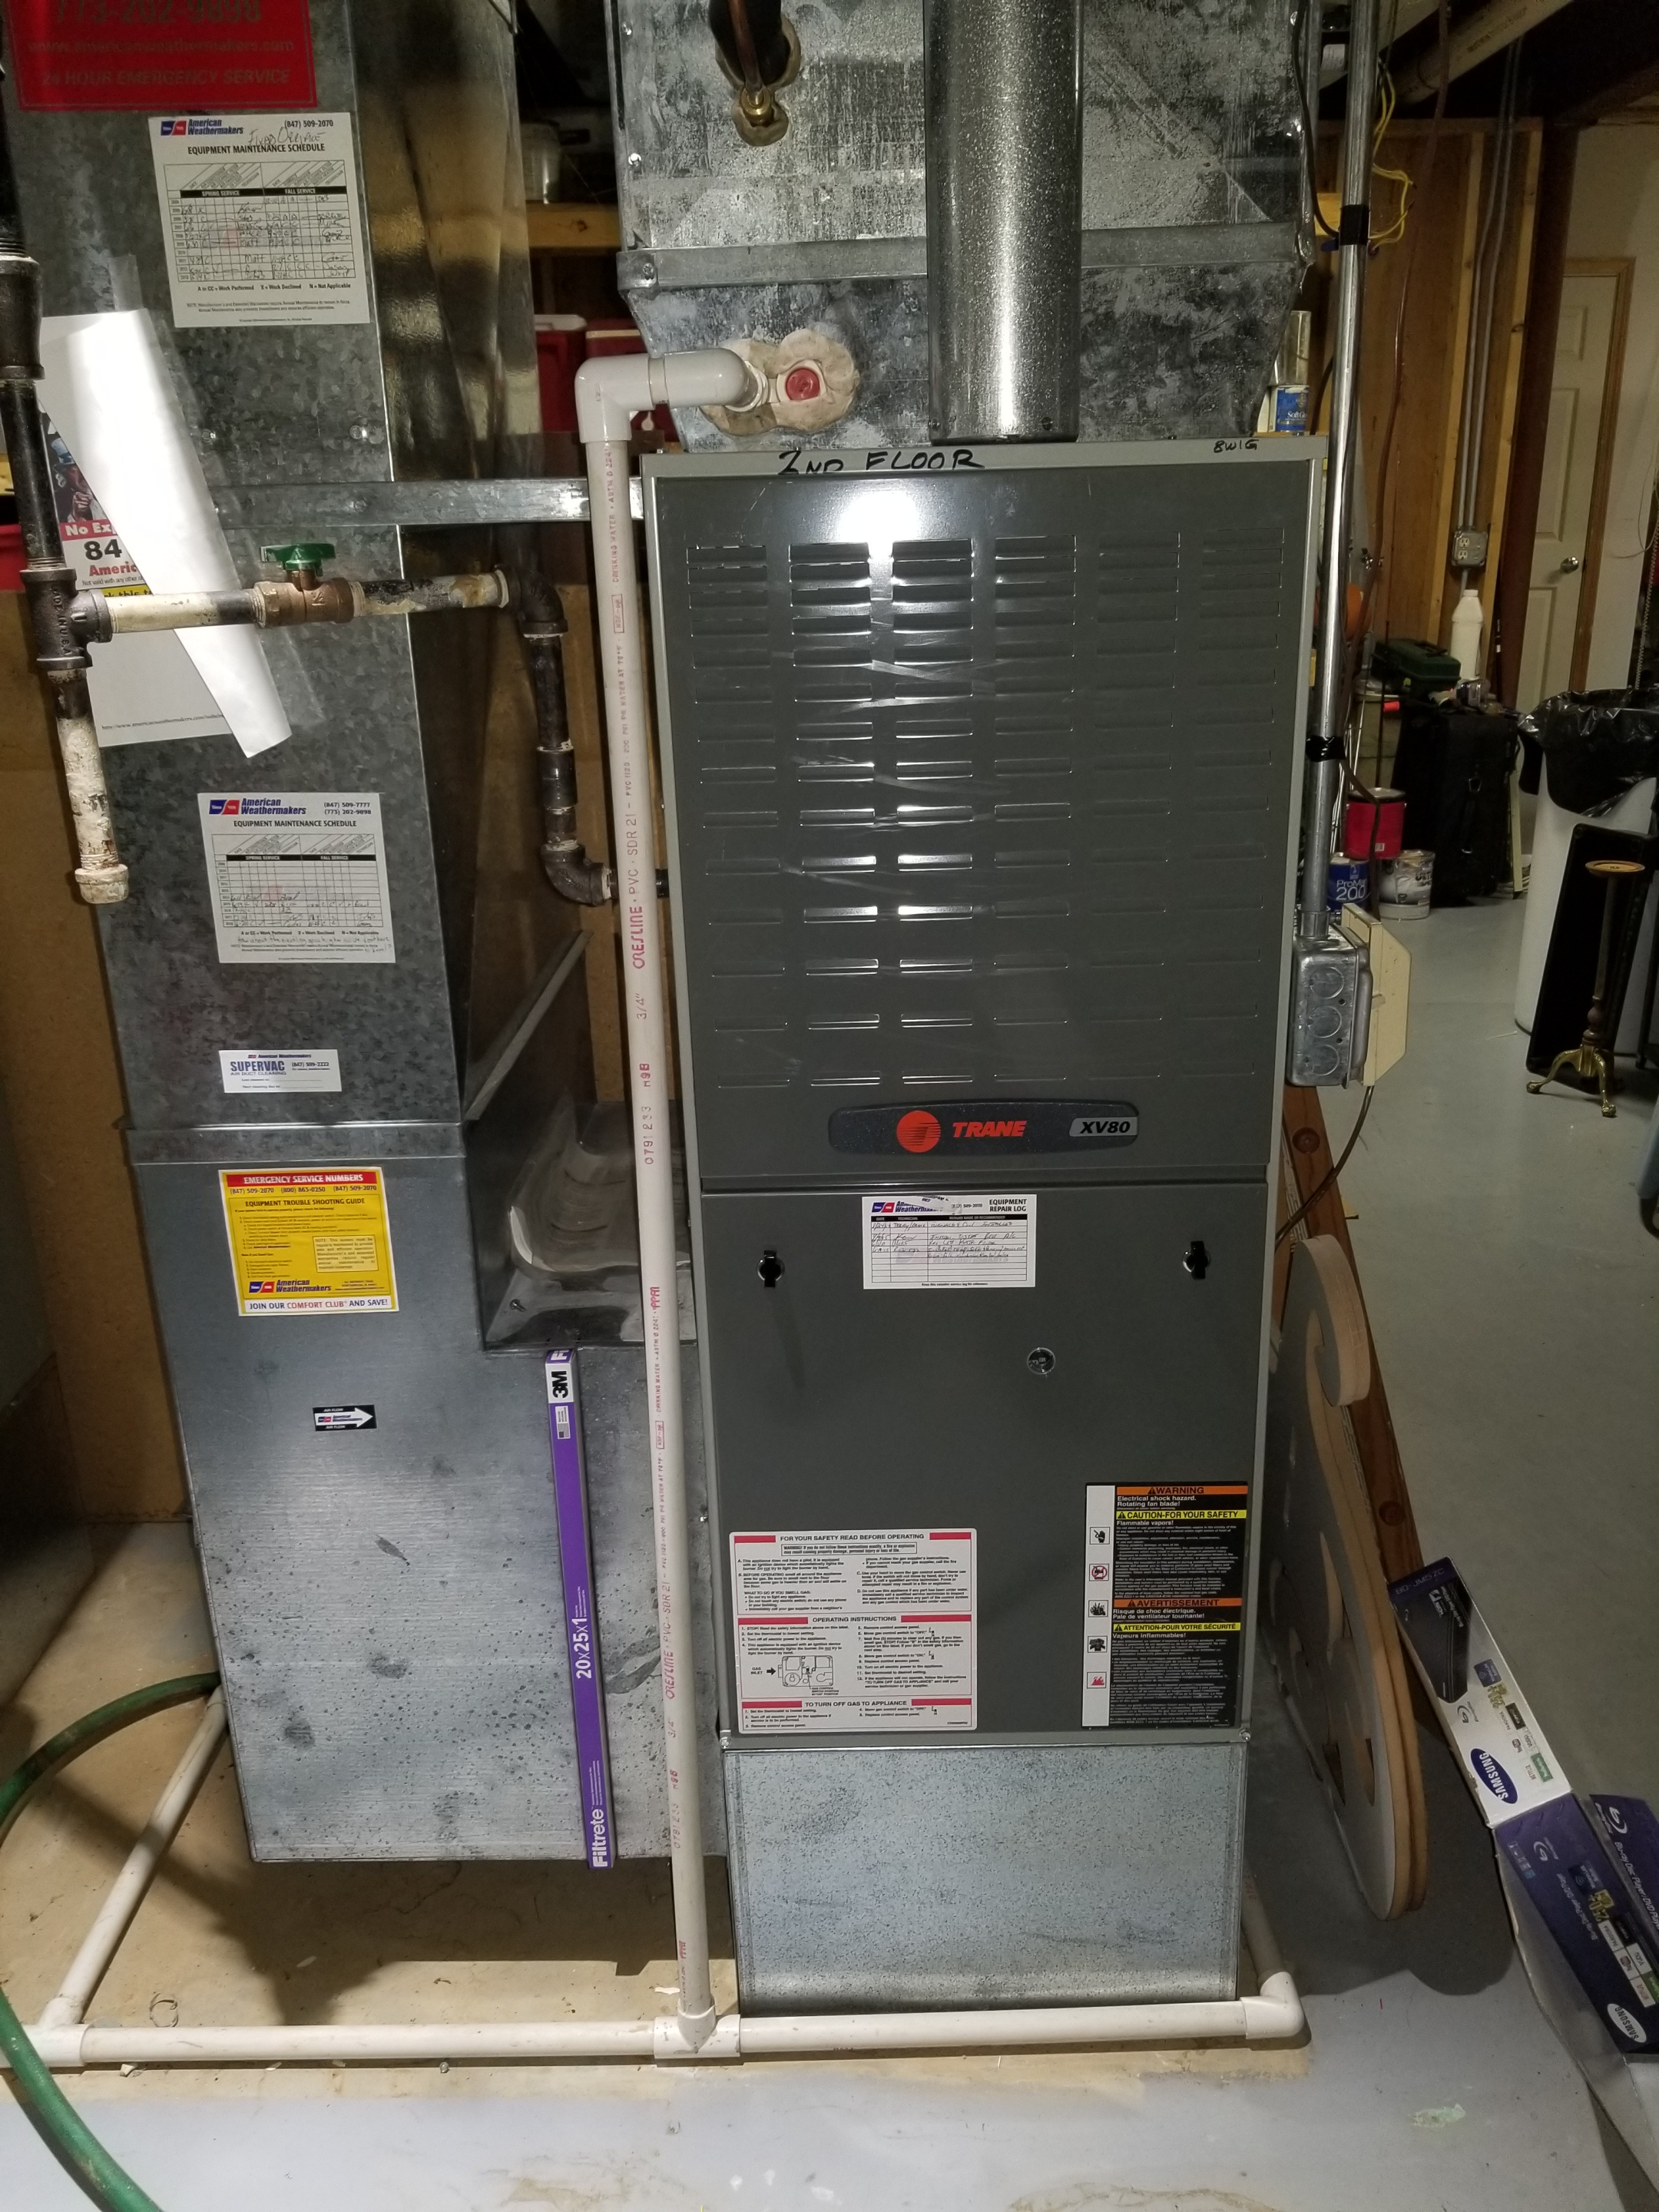 Repaired the Trane furnace and made adjustments to improve the overall efficiency and life expectancy of the equipment